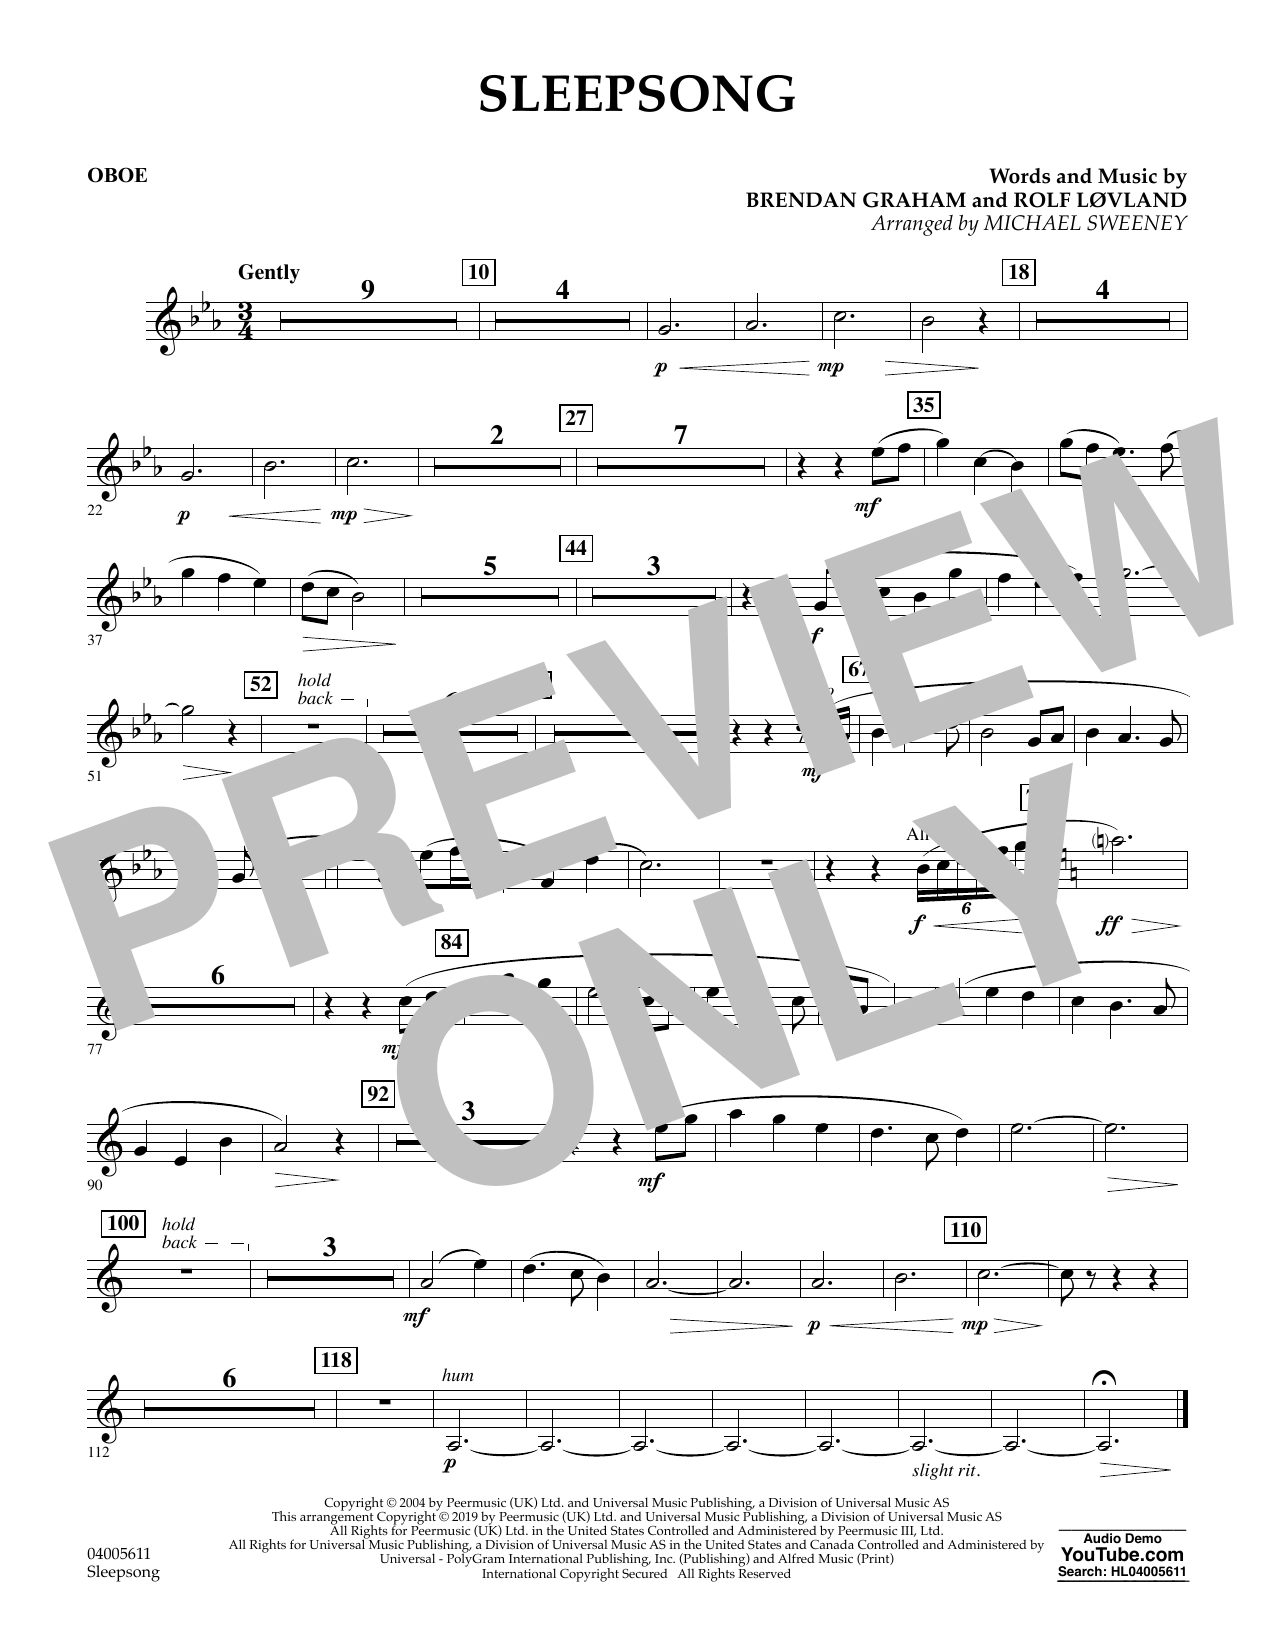 Secret Garden Sleepsong (arr. Michael Sweeney) - Oboe sheet music preview music notes and score for Concert Band including 1 page(s)